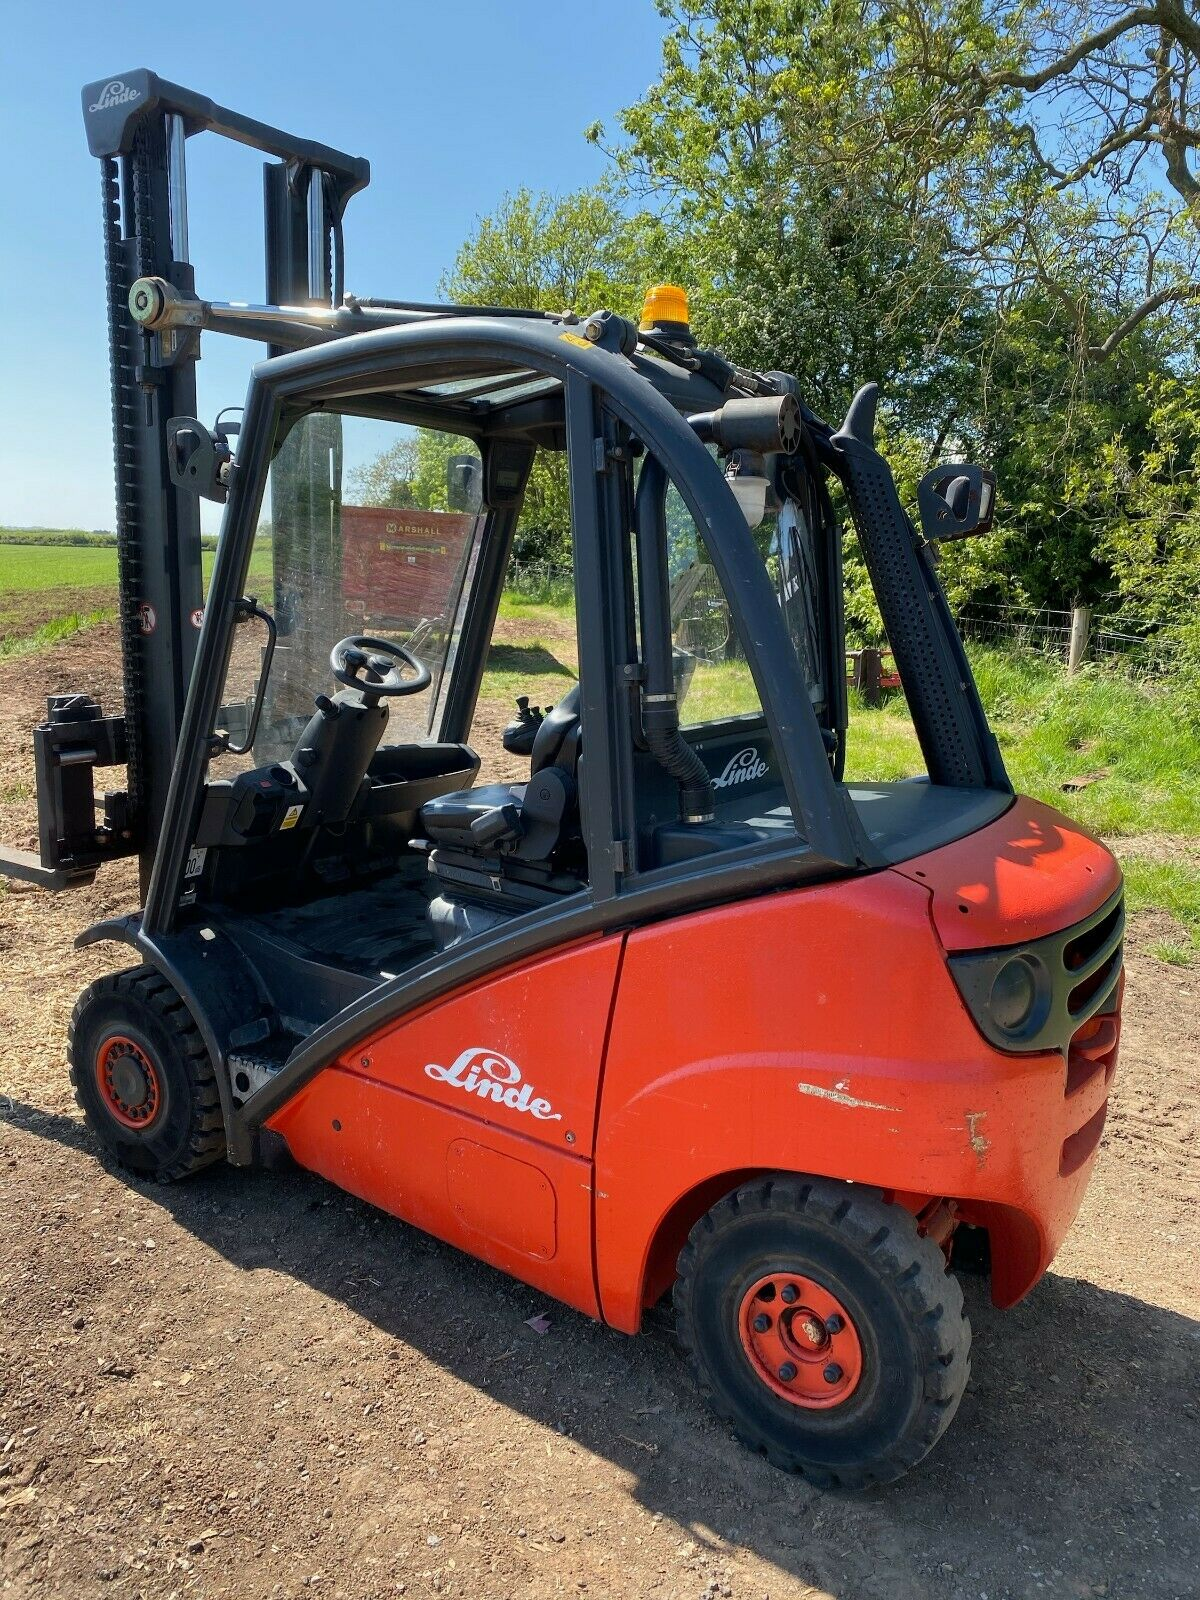 LINDE 2.5 TON, MODEL: H25D, 3.7 METRE LIFT, DUPLEX, SIDE SHIFT, ONLY 600 HOURS FROM NEW, 1 OWNER - Image 2 of 4